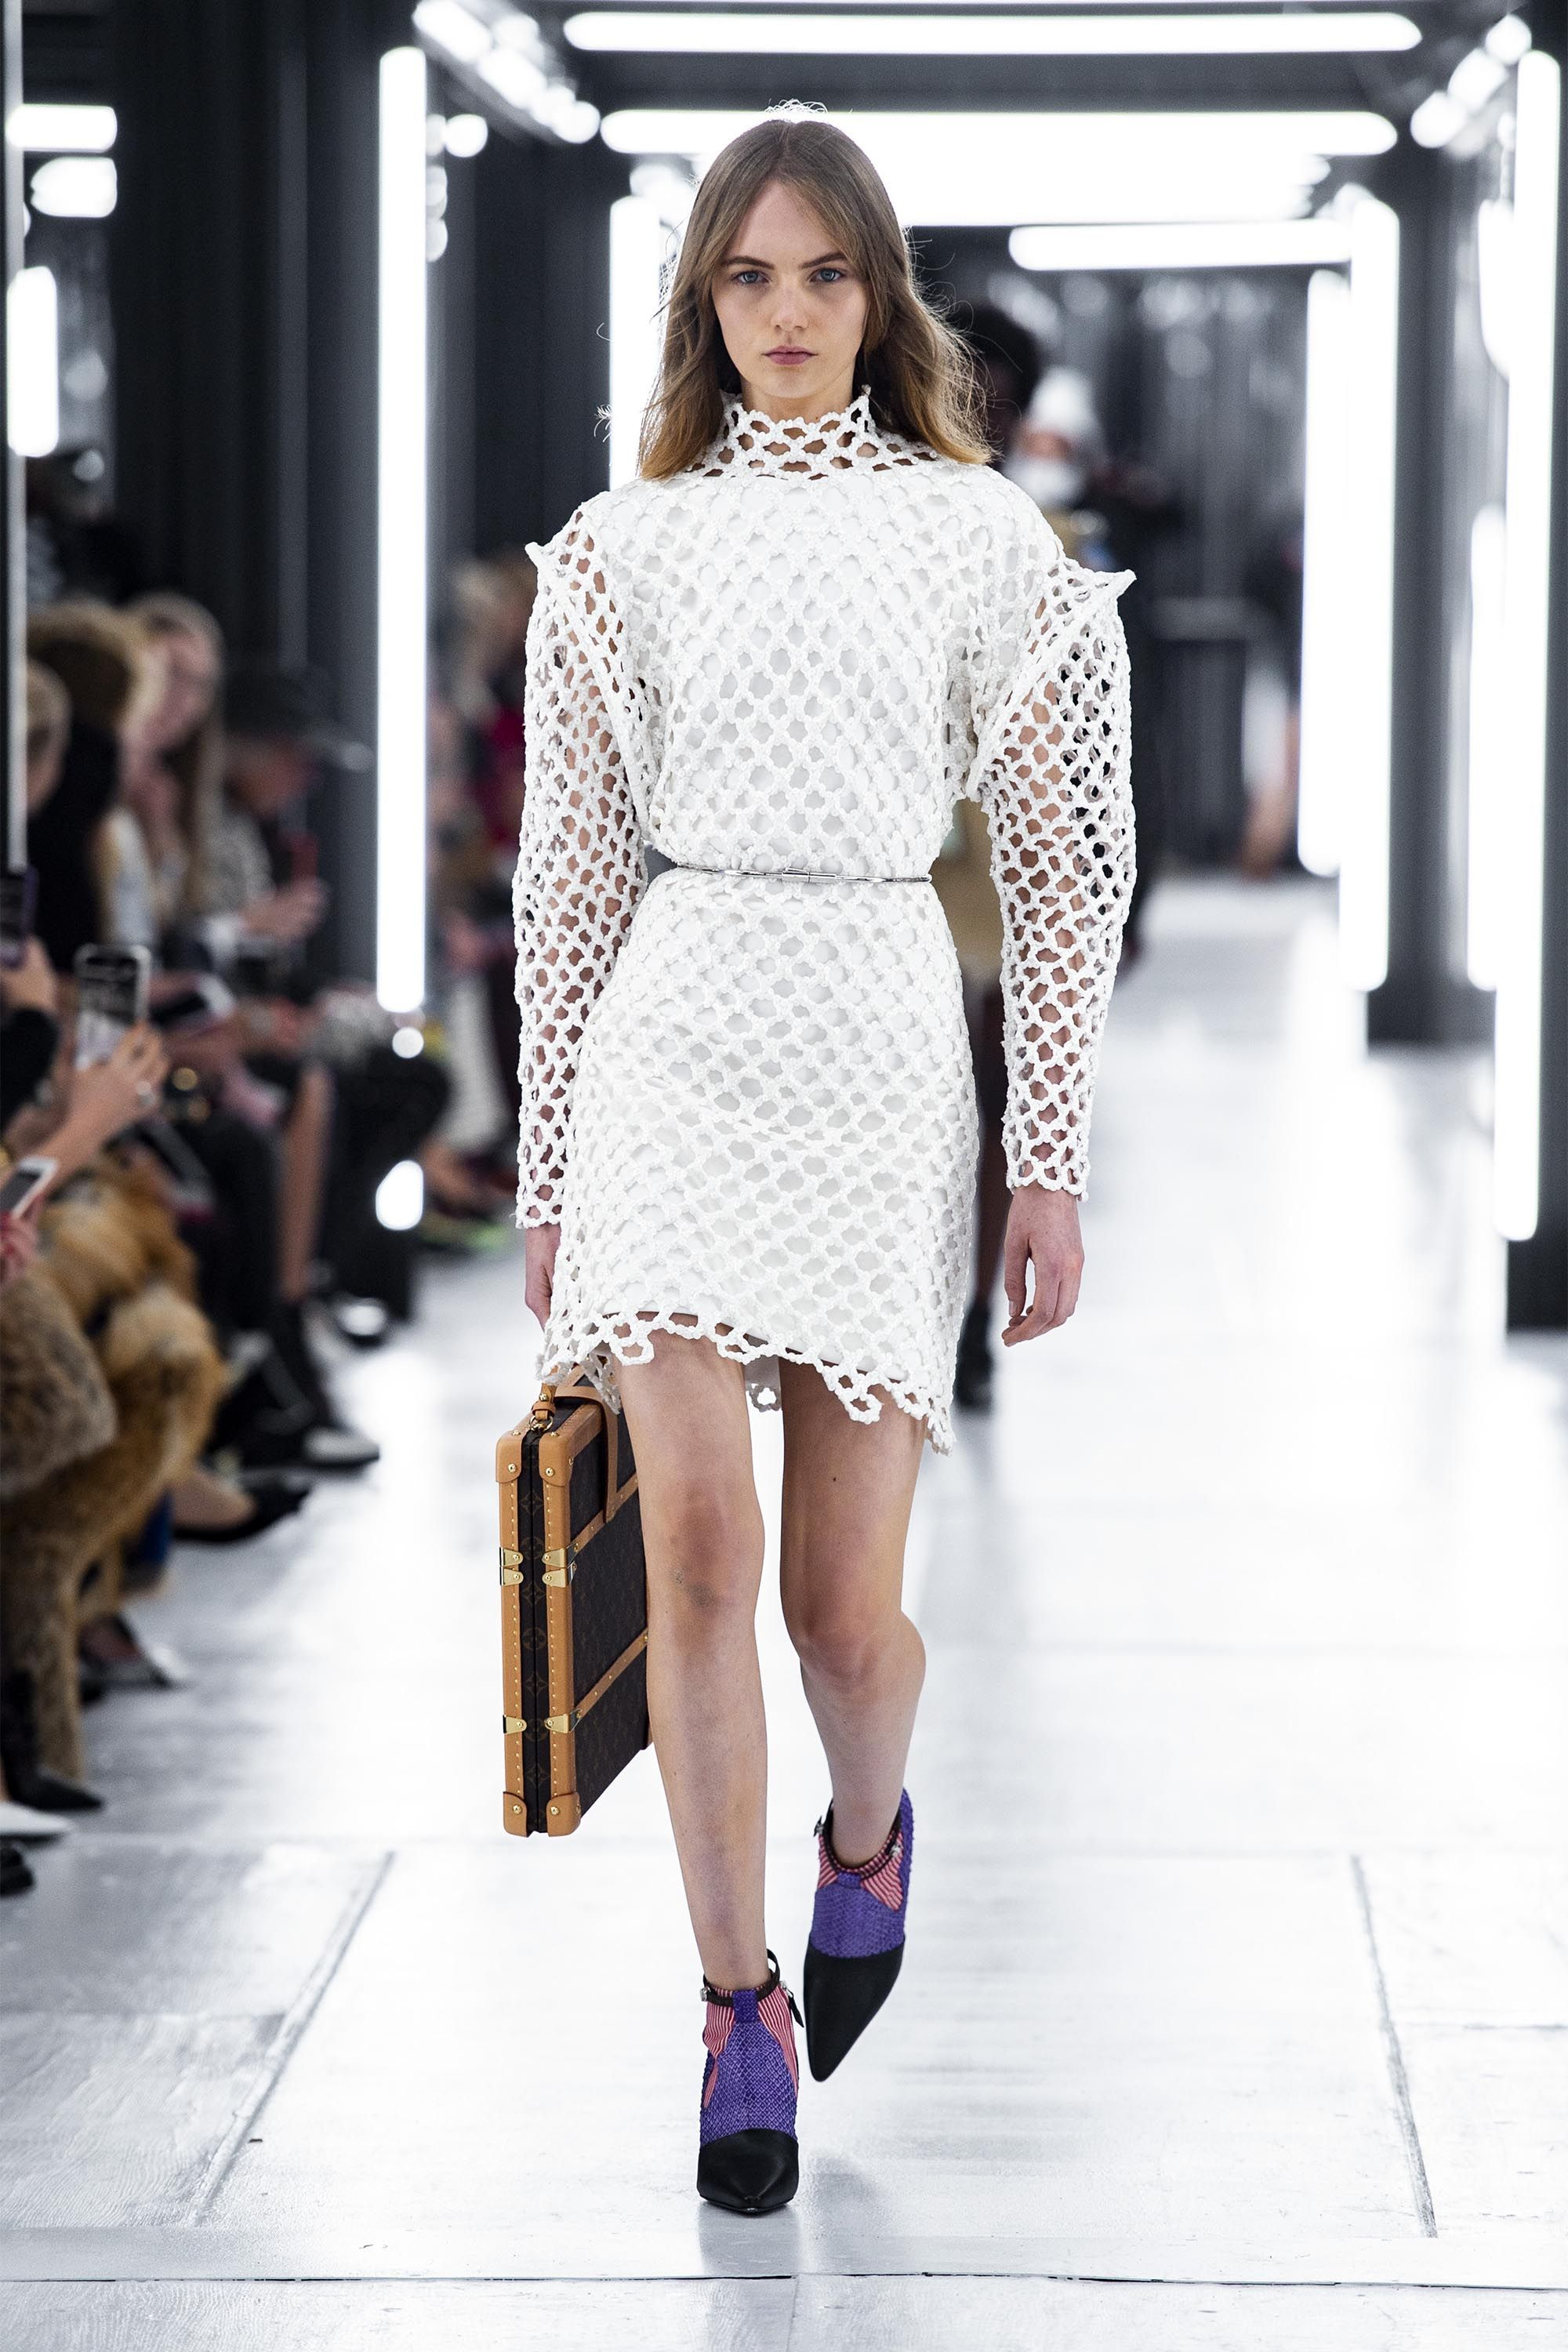 b9fed5f88e8 All the Trends You Need to Know from the Spring 2019 Runways - Spring 2019  Fashion Trends for Women